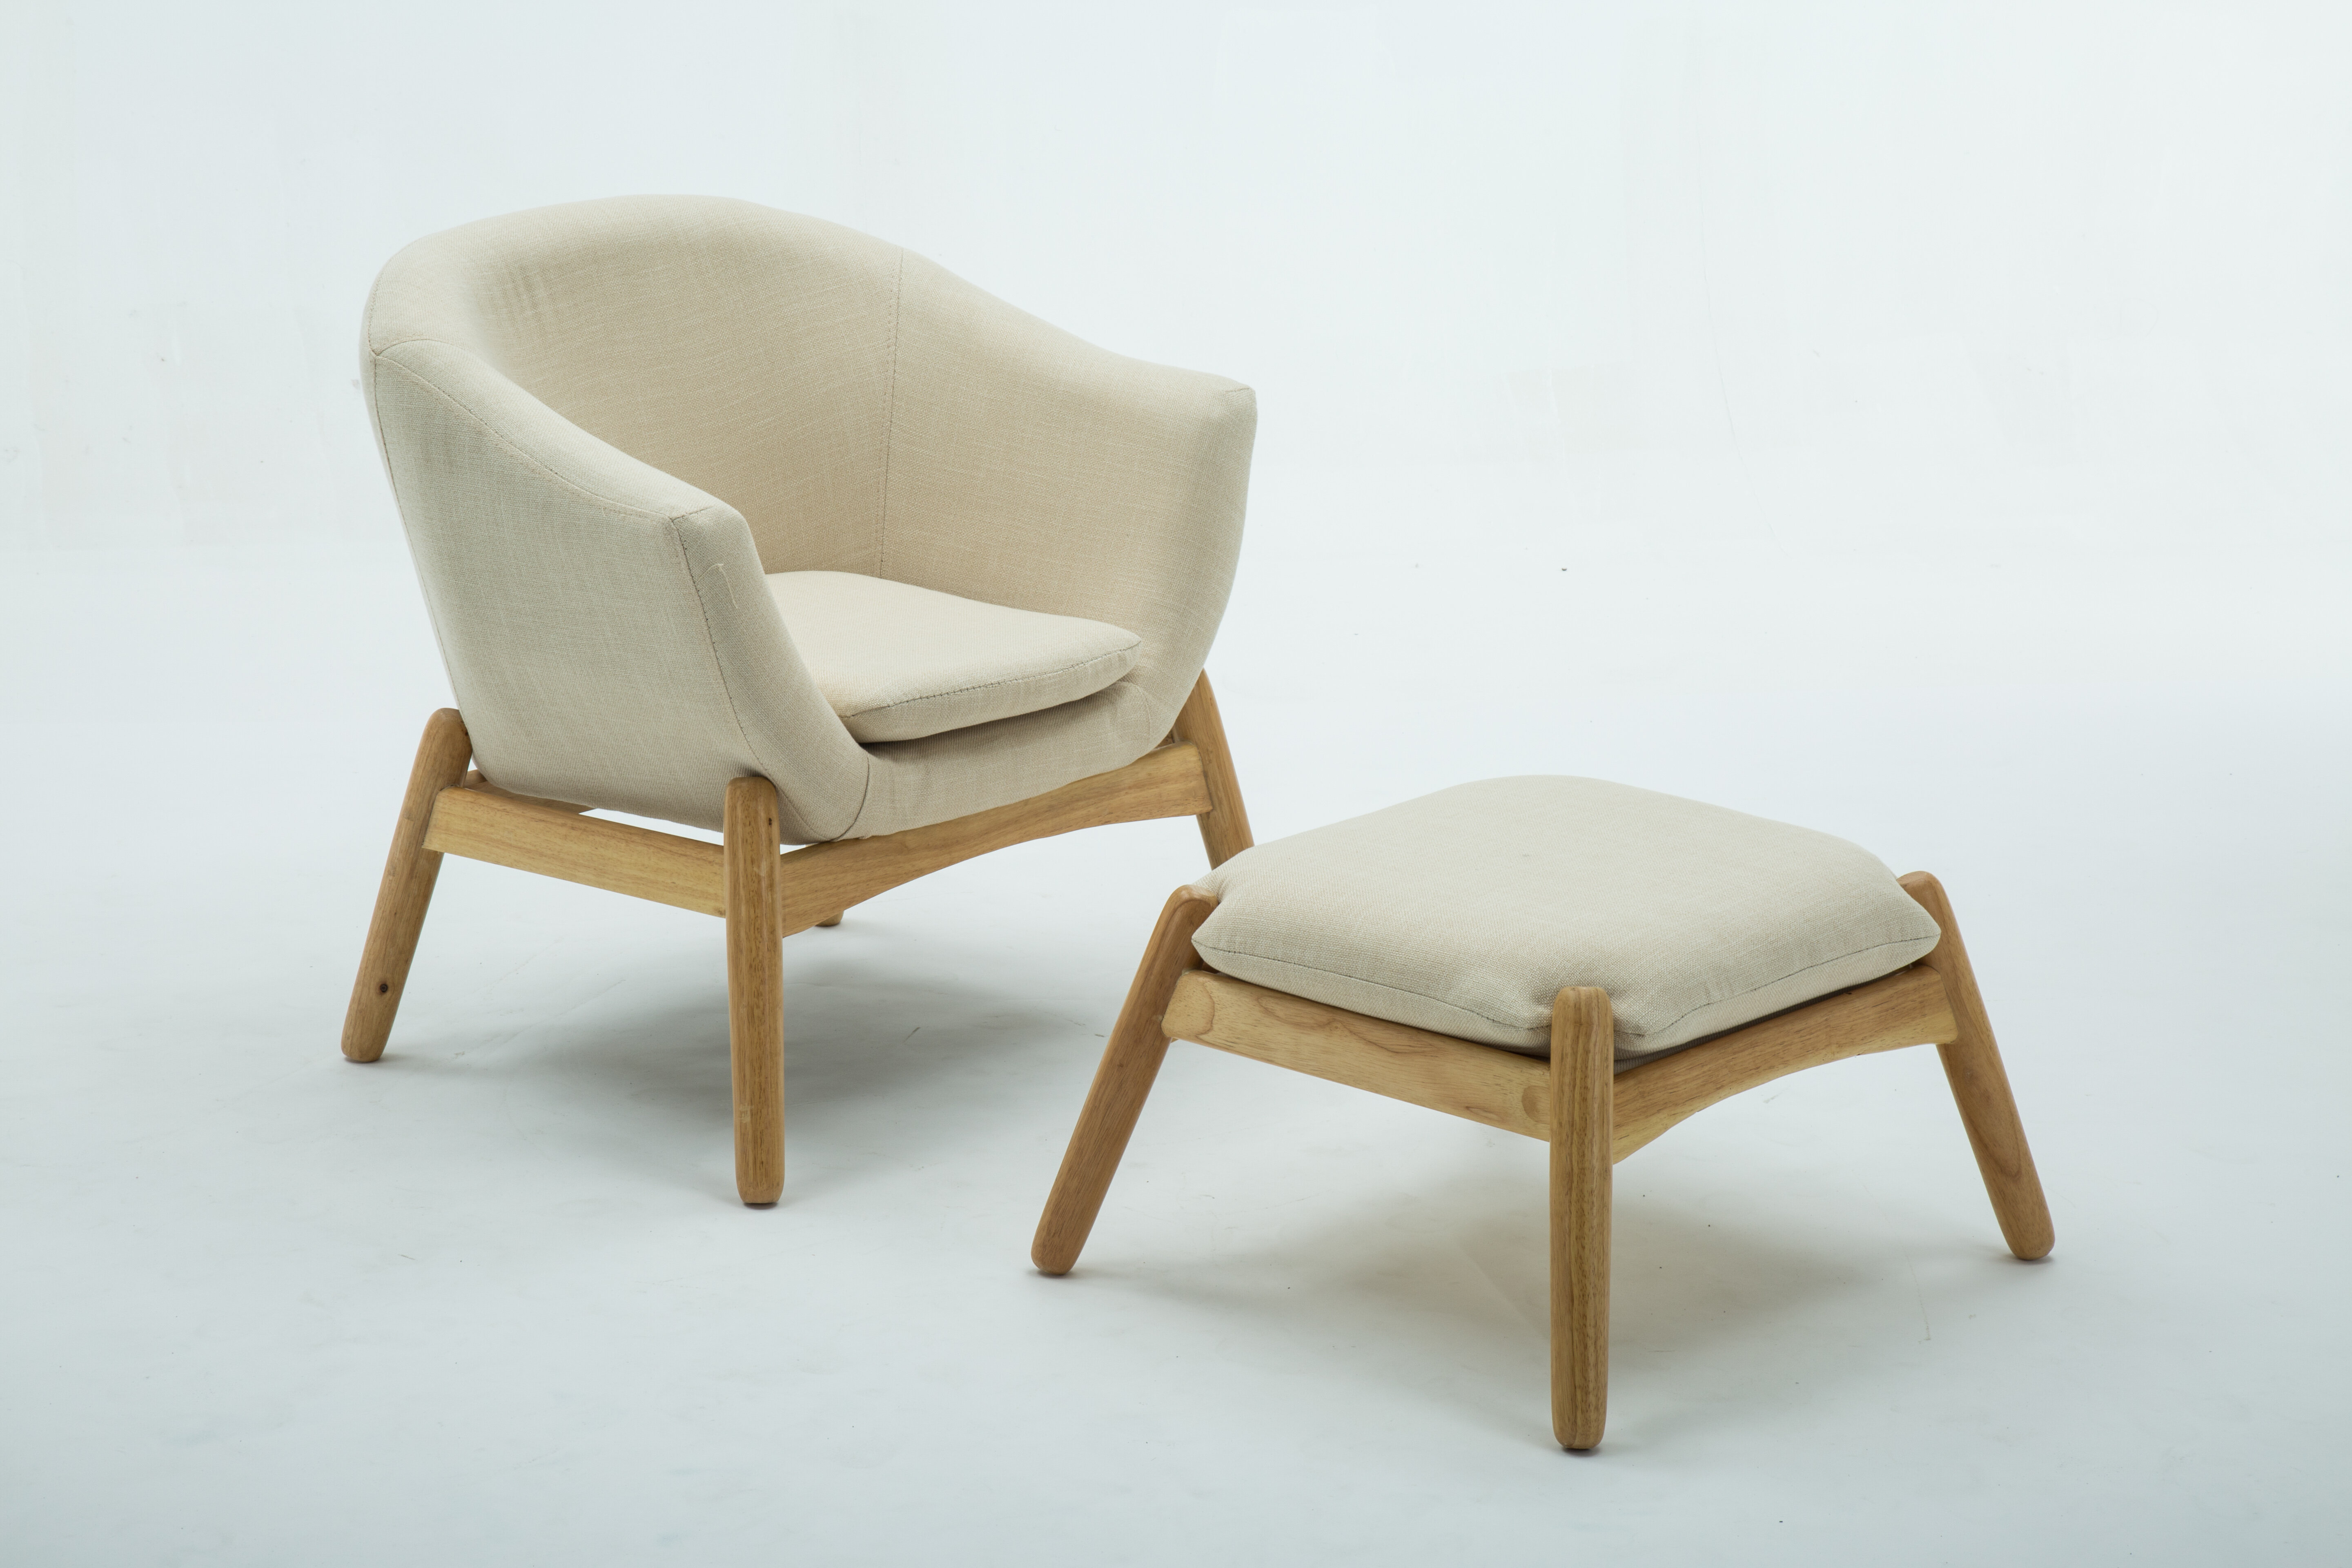 travis 16 lounge chair and ottoman a